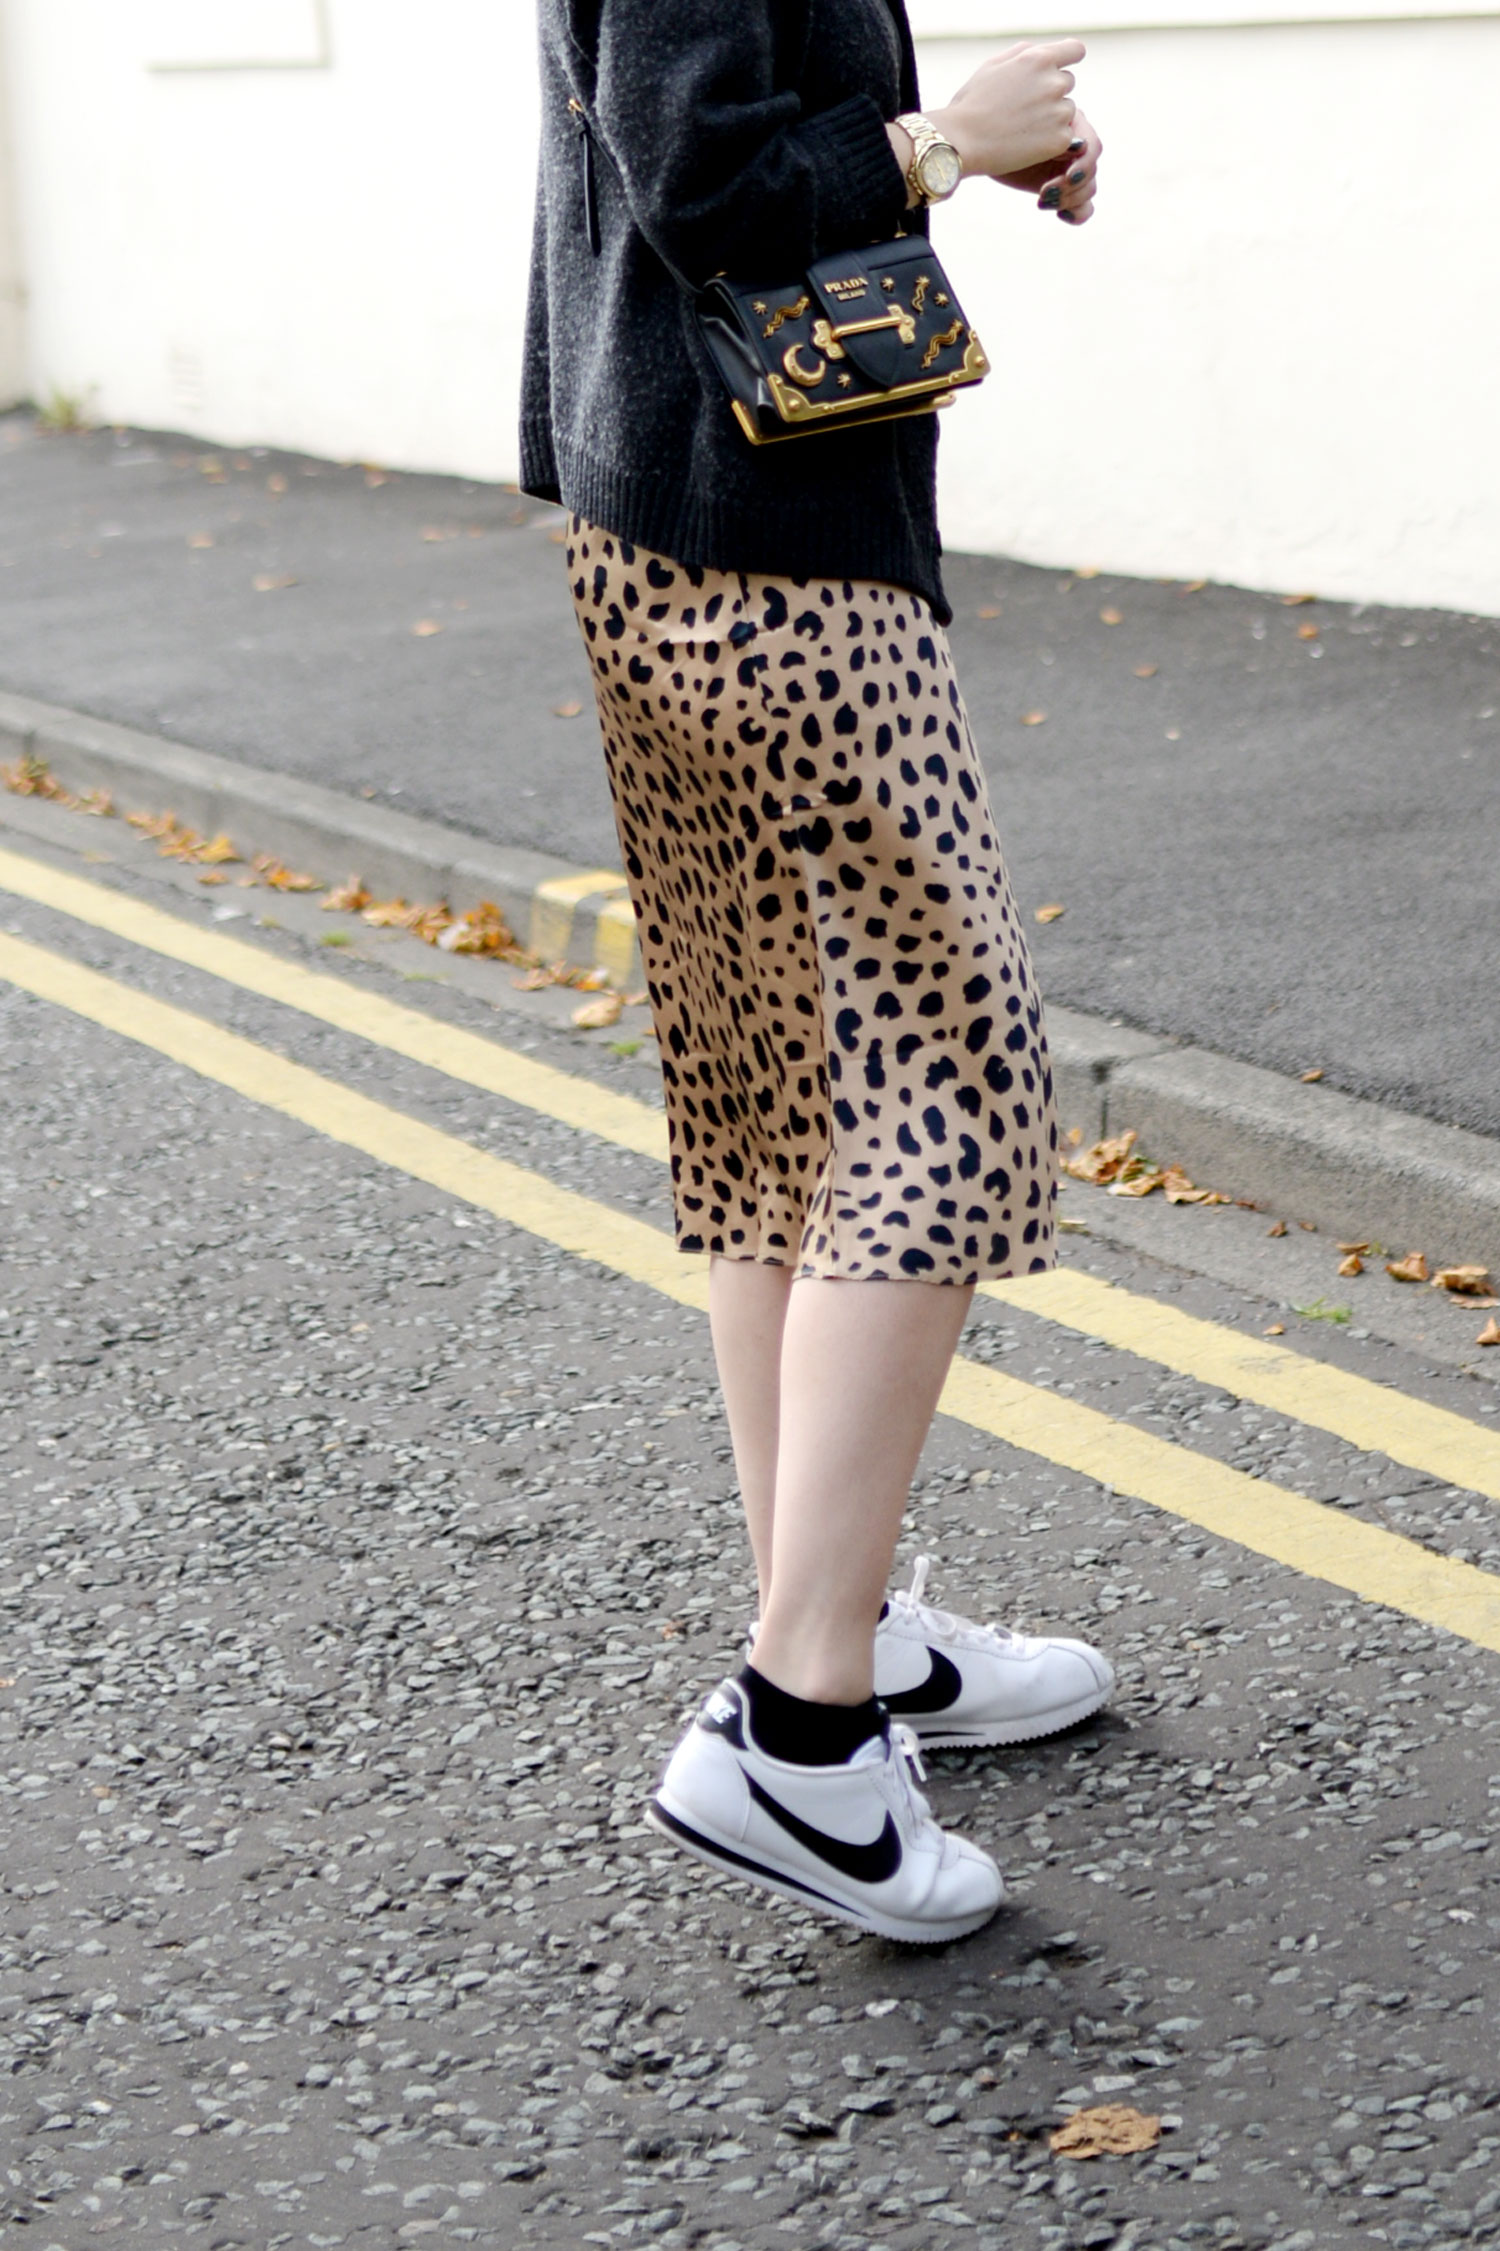 realisation-par-naomi-wild-thing-leopard-silk-skirt-prada-cahier-astrology-bag-6